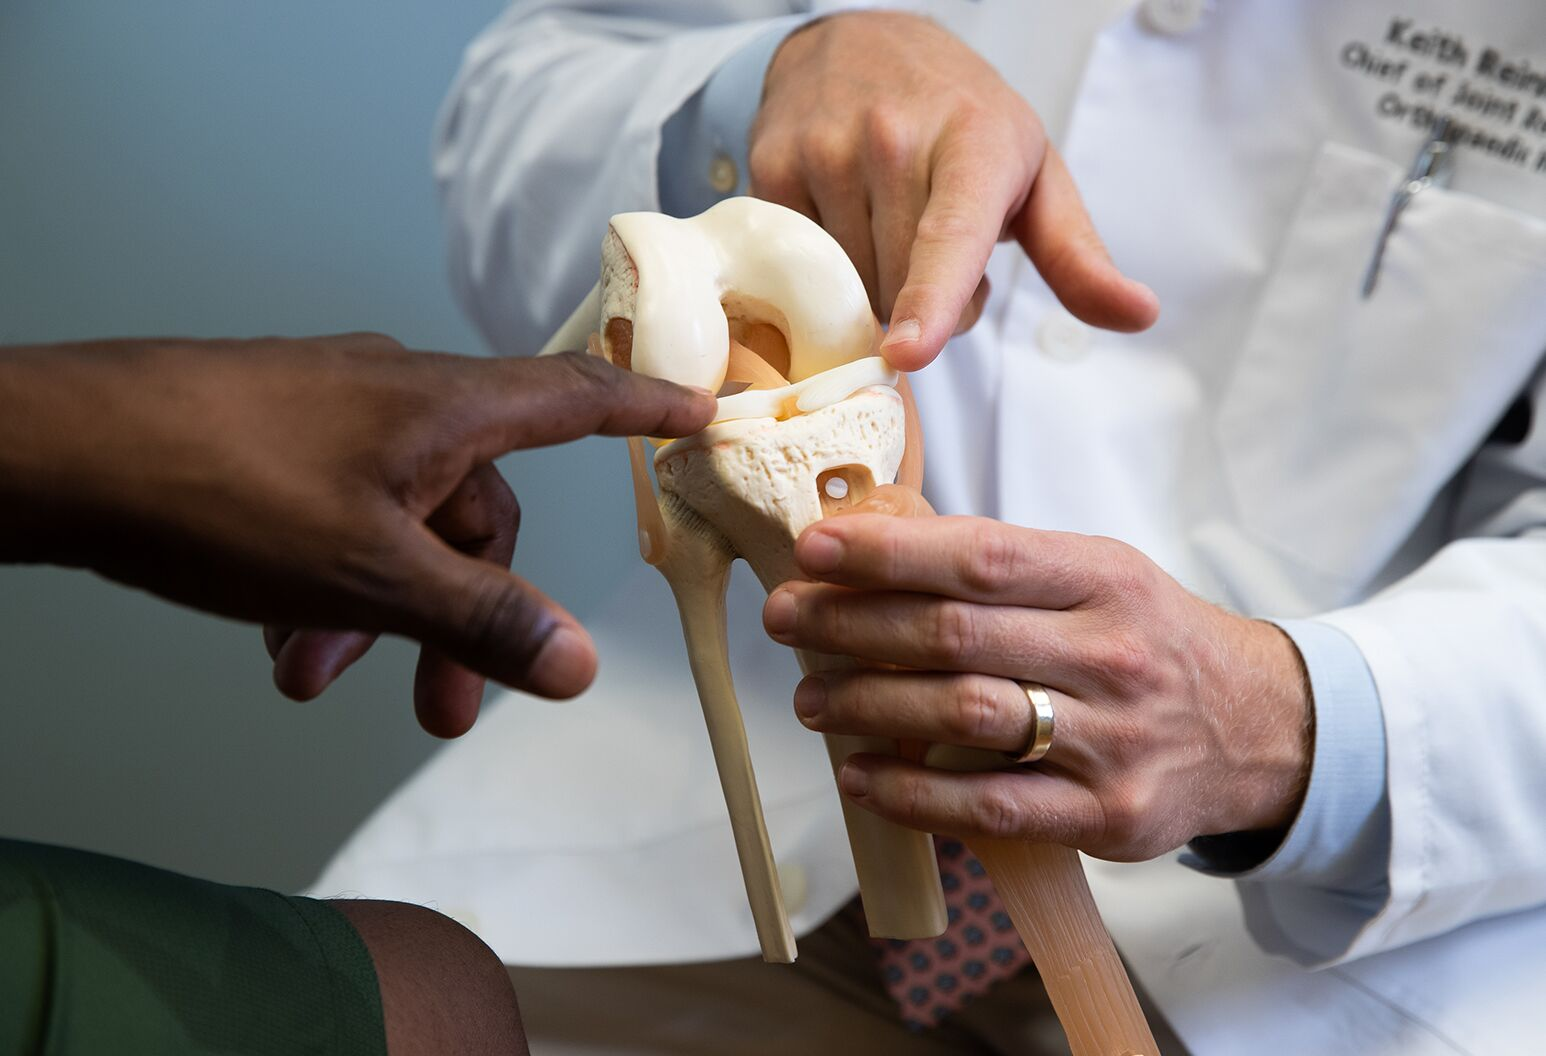 A doctor pointing at a model of a bone